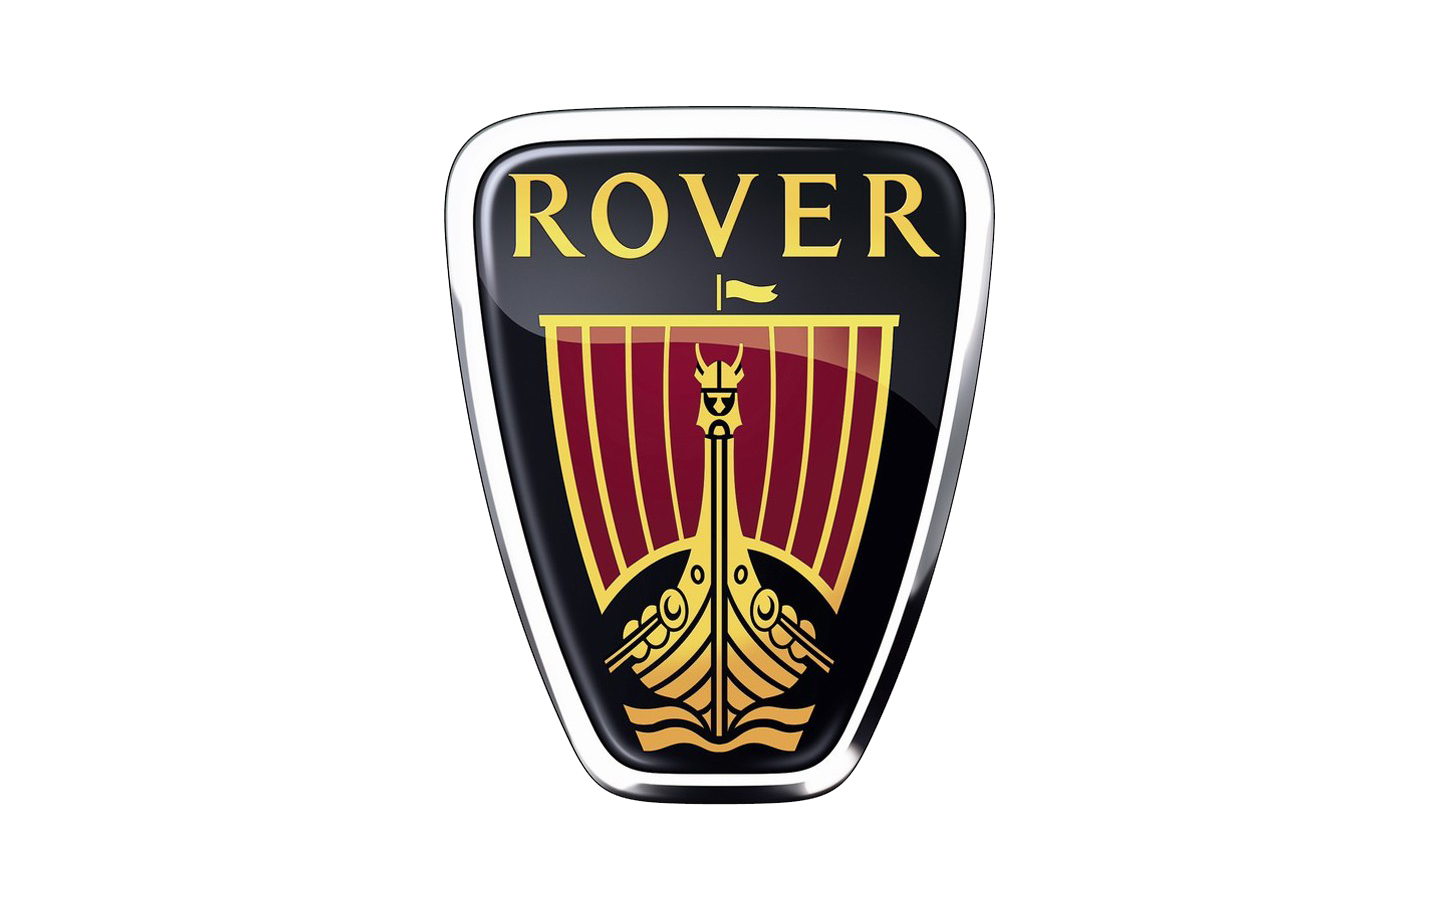 rover logo, hd, png, meaning, information, car, land rover png logo #6077